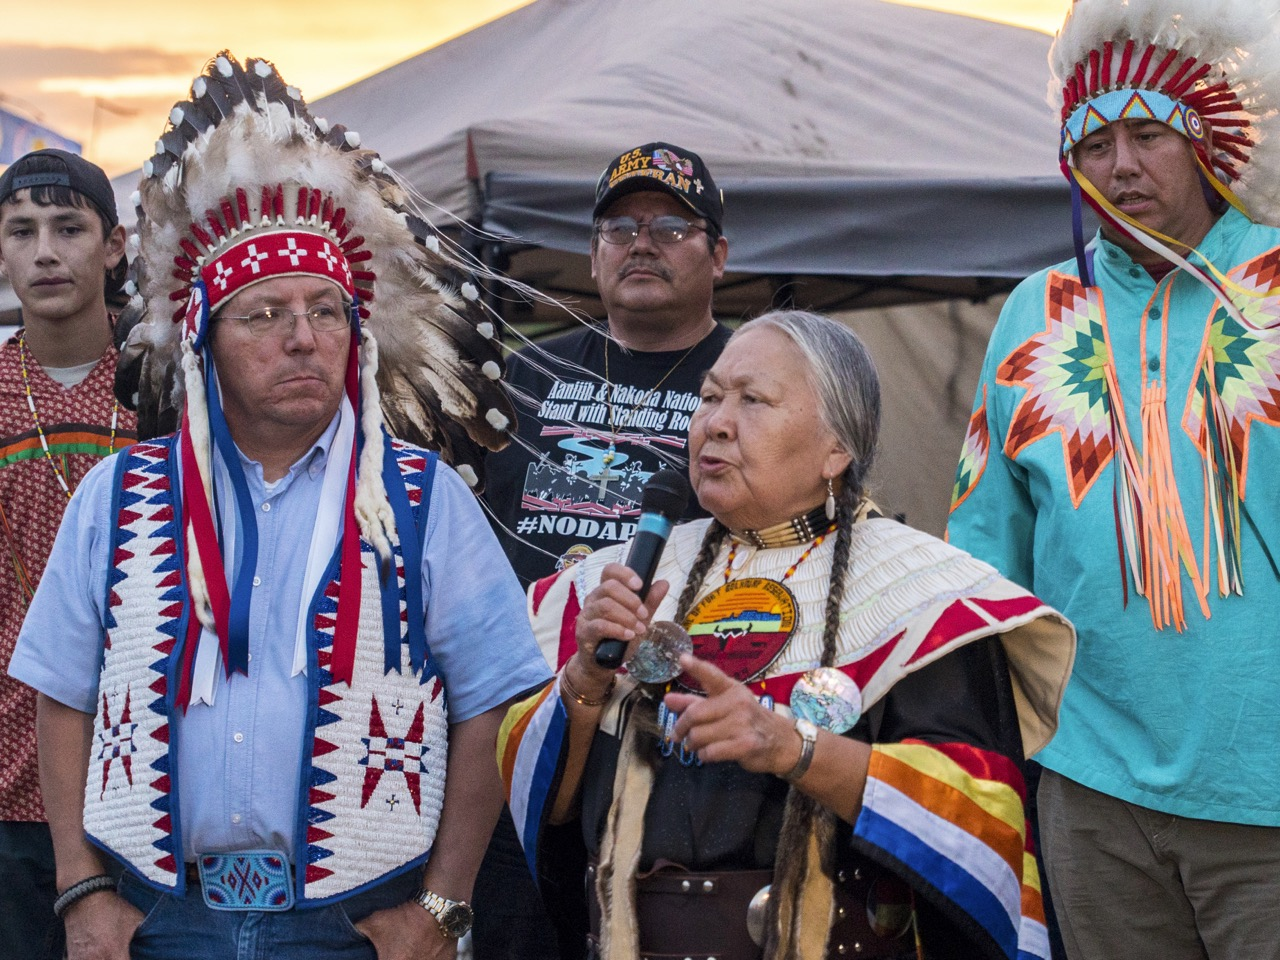 Peter d'Errico: New book explores struggles facing Native nations and peoples